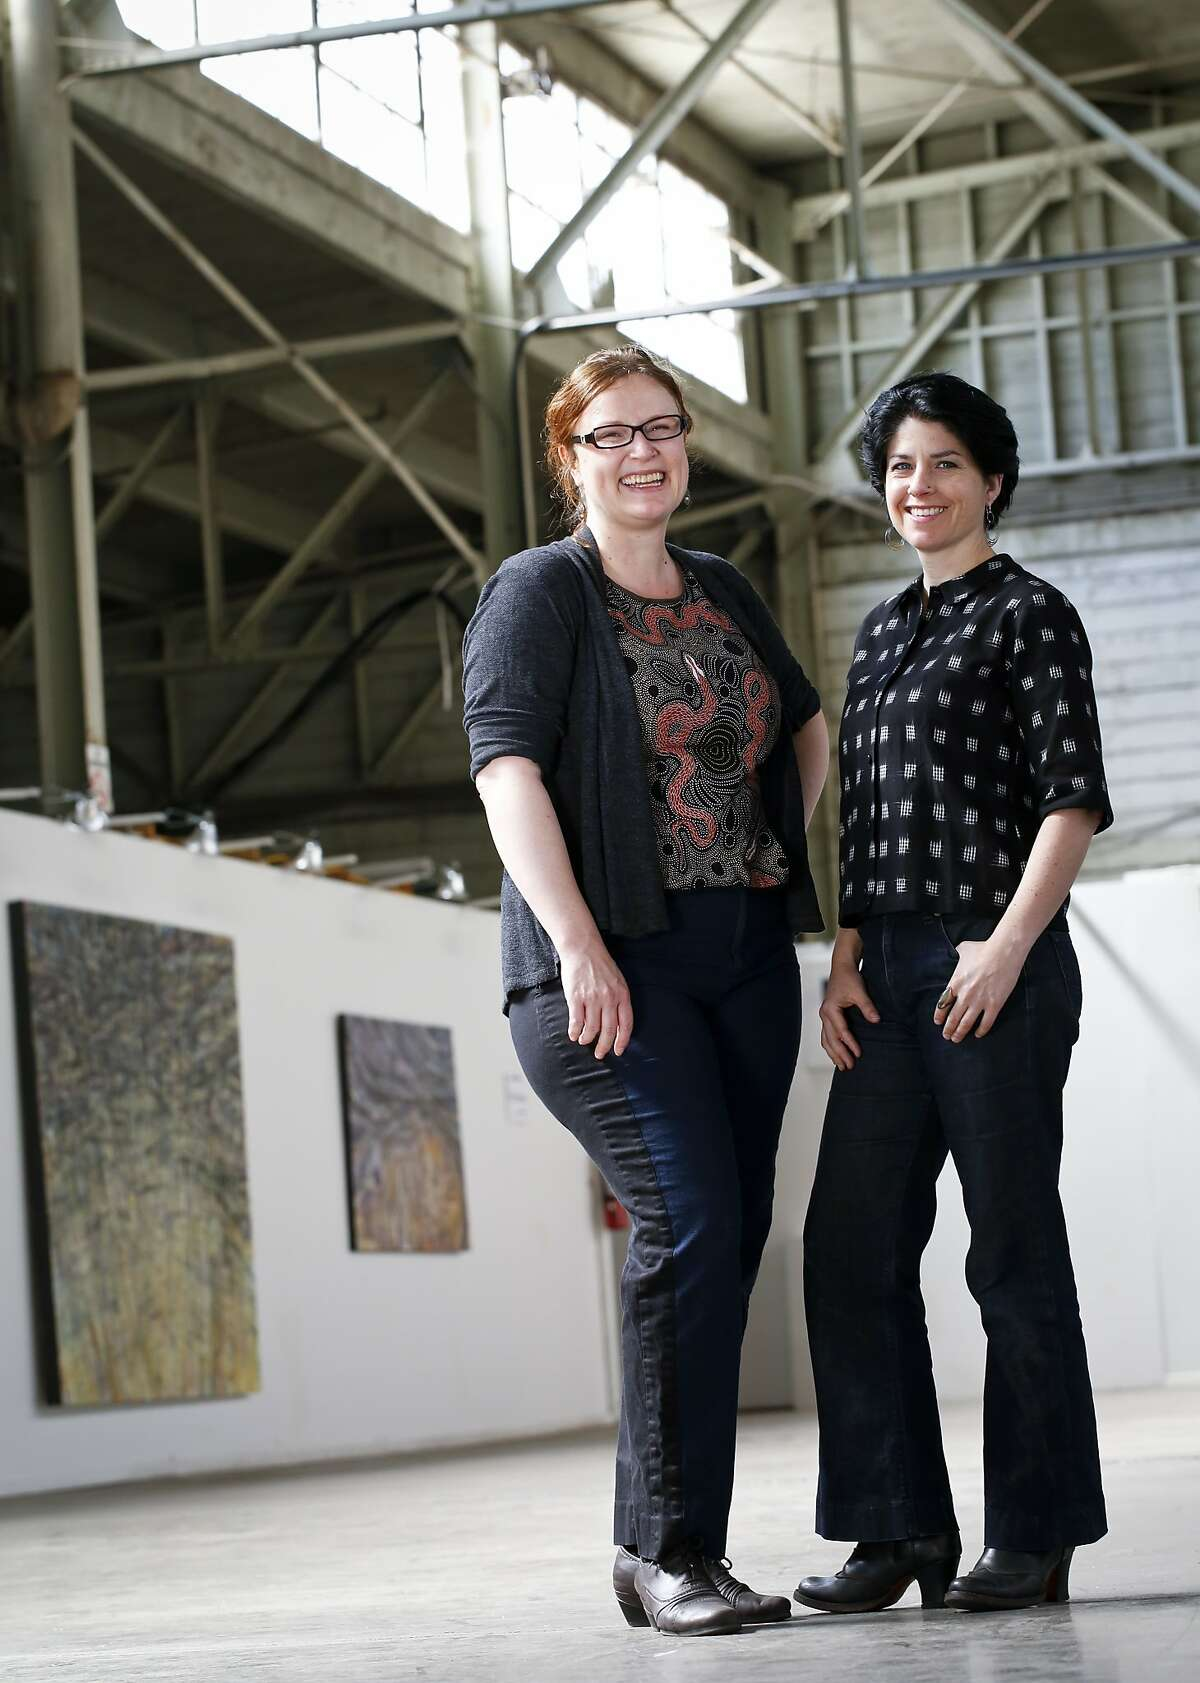 Kyra, left, and Bree Hylkema of Vermeulen and Co. are seen on Tuesday, June 17, 2014 in Oakland, Calif., at American Steel where they have their studio.